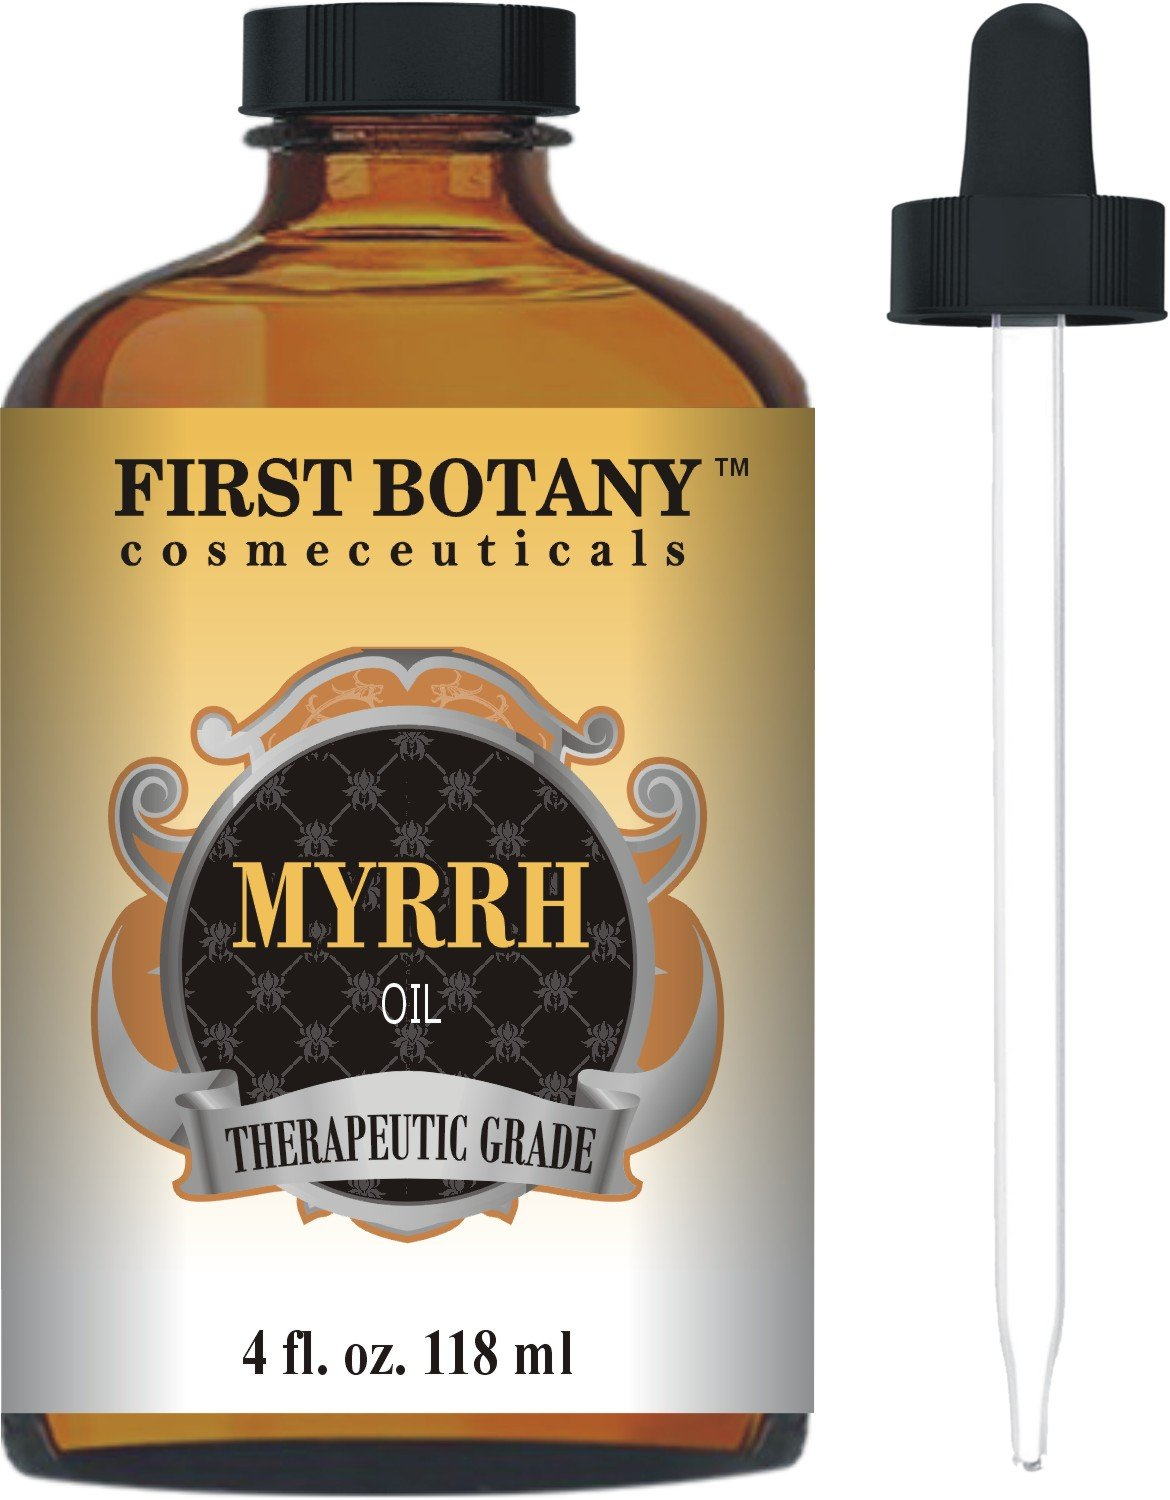 Myrrh Essential Oil 4 fl. oz. With a Glass Dropper - 100% Pure and Natural with Premium Quality & Therapeutic Grade - Ideal for Aromatherapy, Massages and Maintaining Healthy Skin by First Botany Cosmeceuticals B01779CIVA